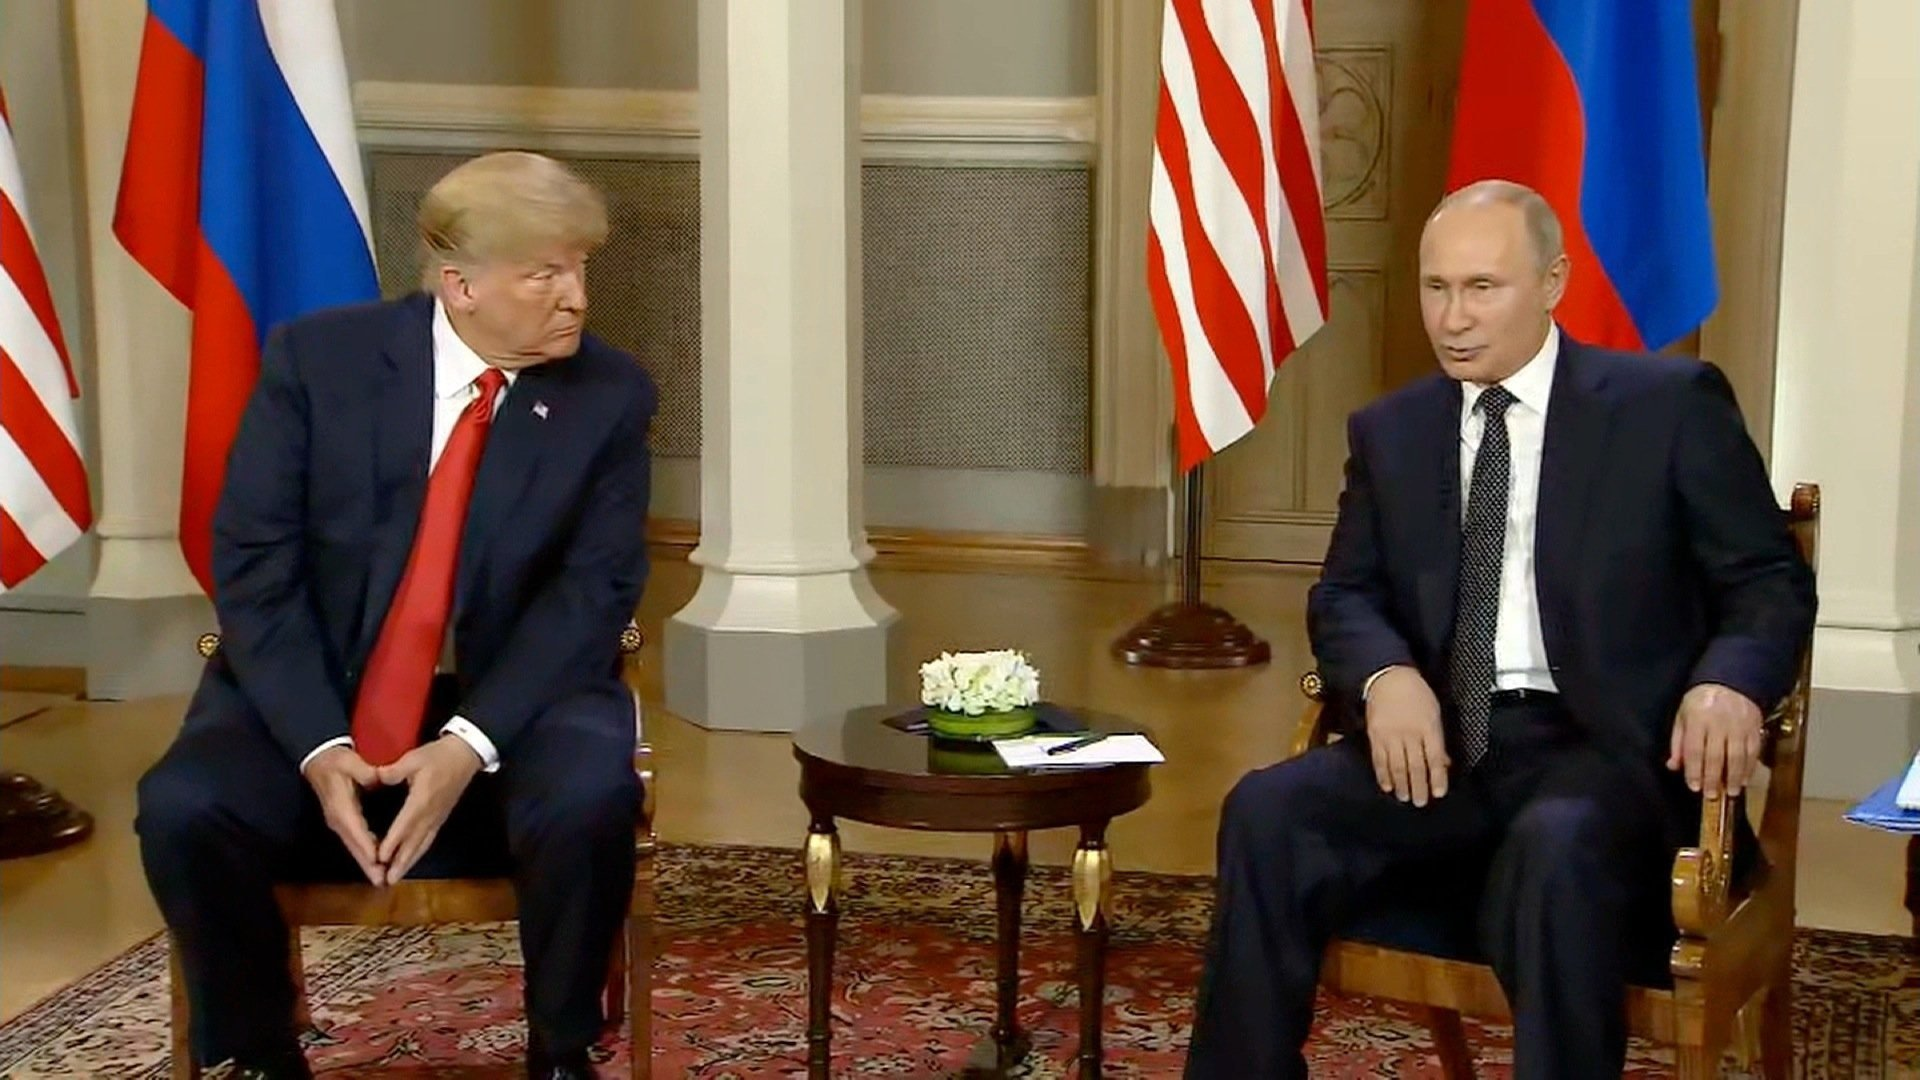 President Trump and Russian President Vladimir Putin speak at a summit